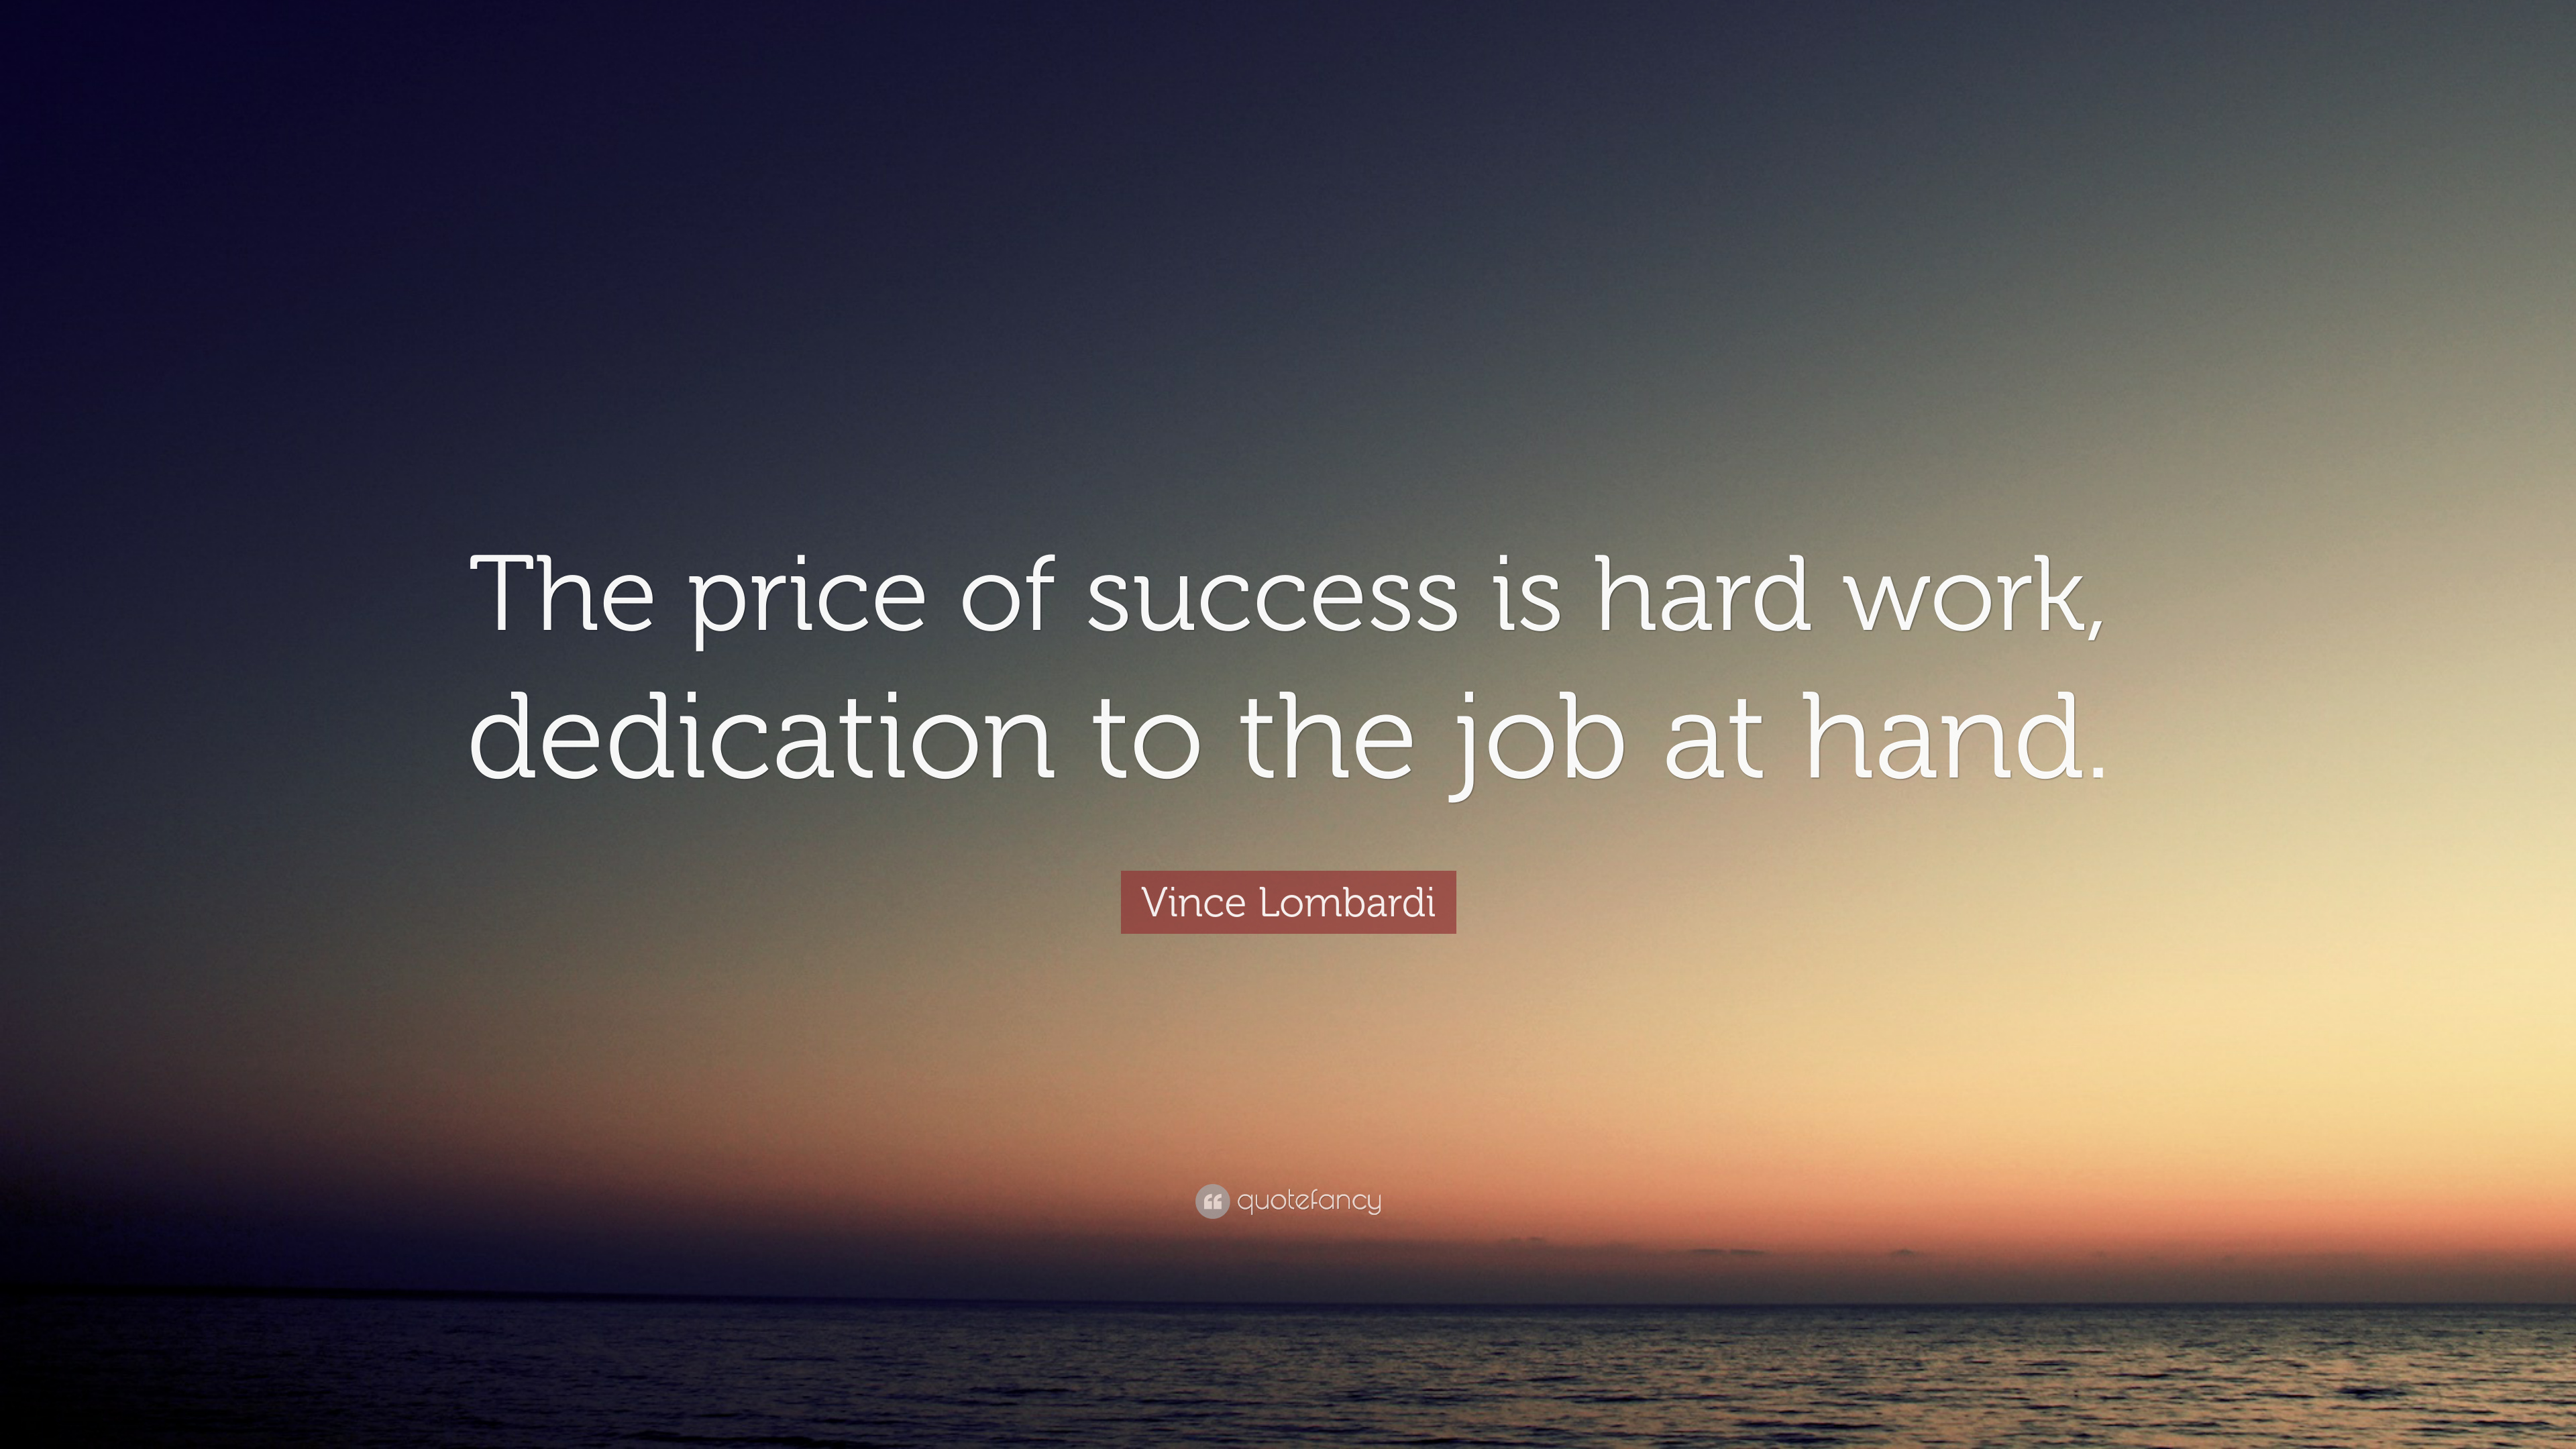 Quotes about dedication and hard work